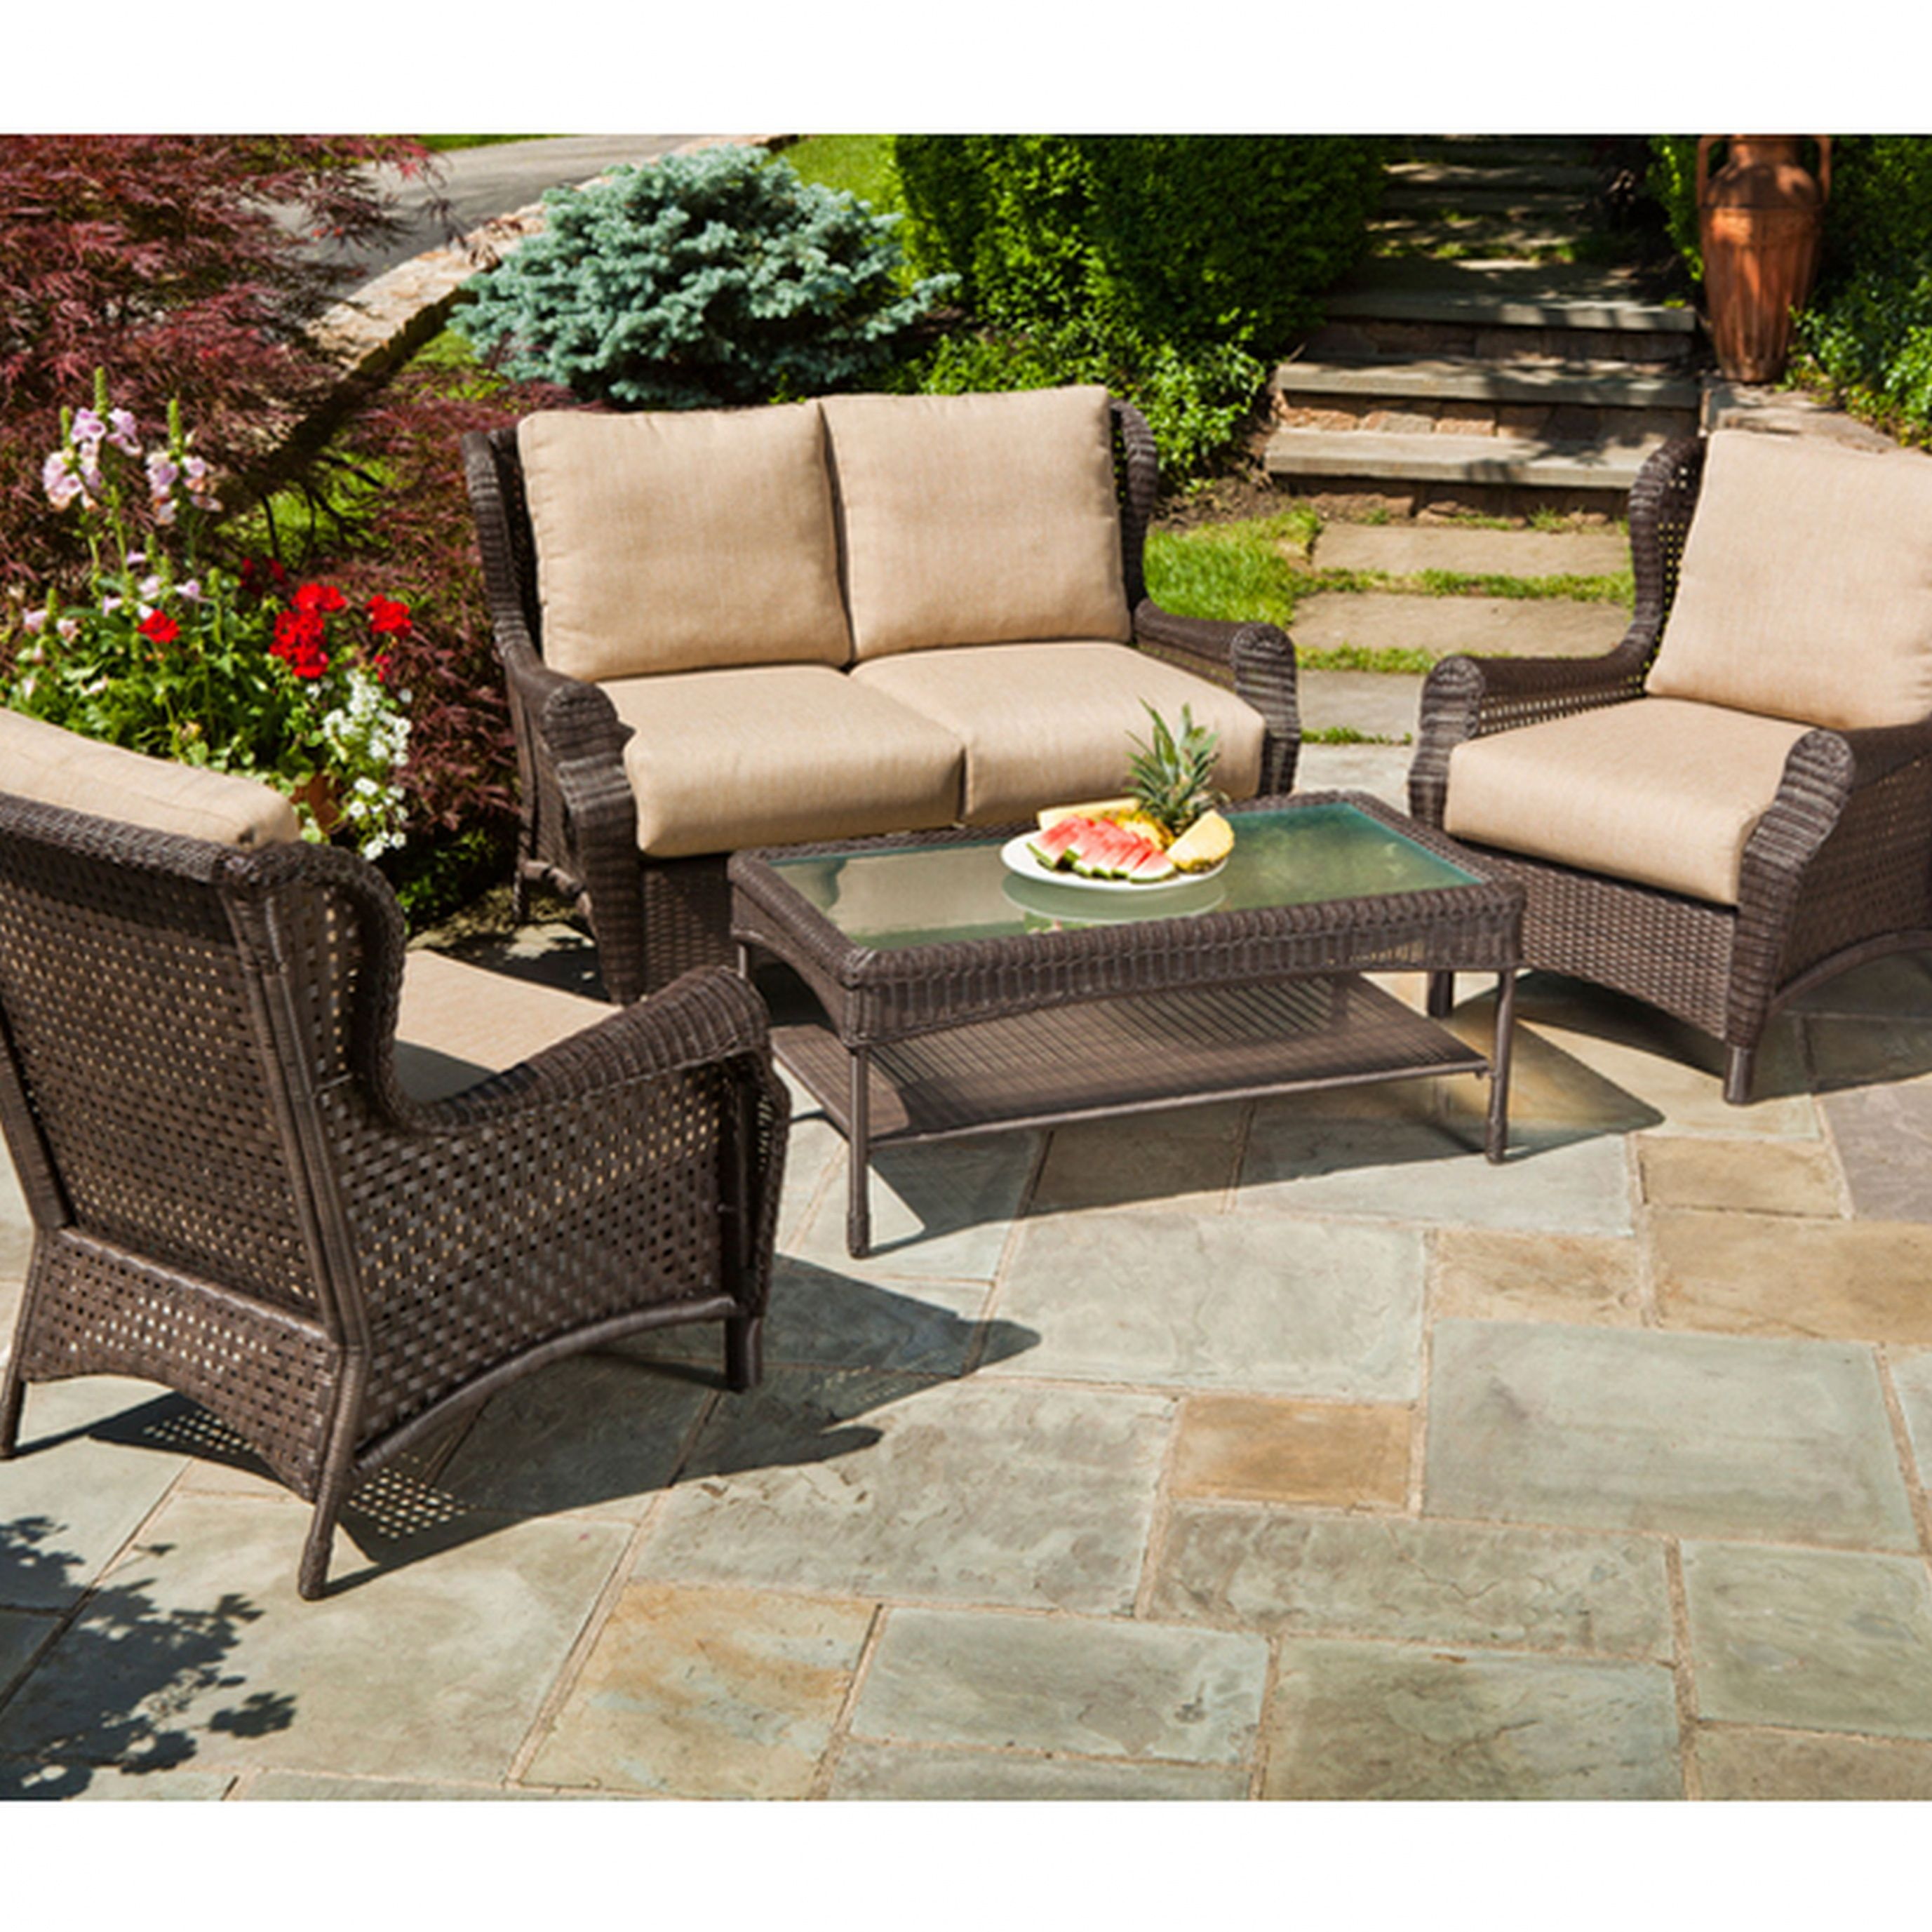 Jcpenney Outdoor Furniture Outlet Cool Modern Furniture Check